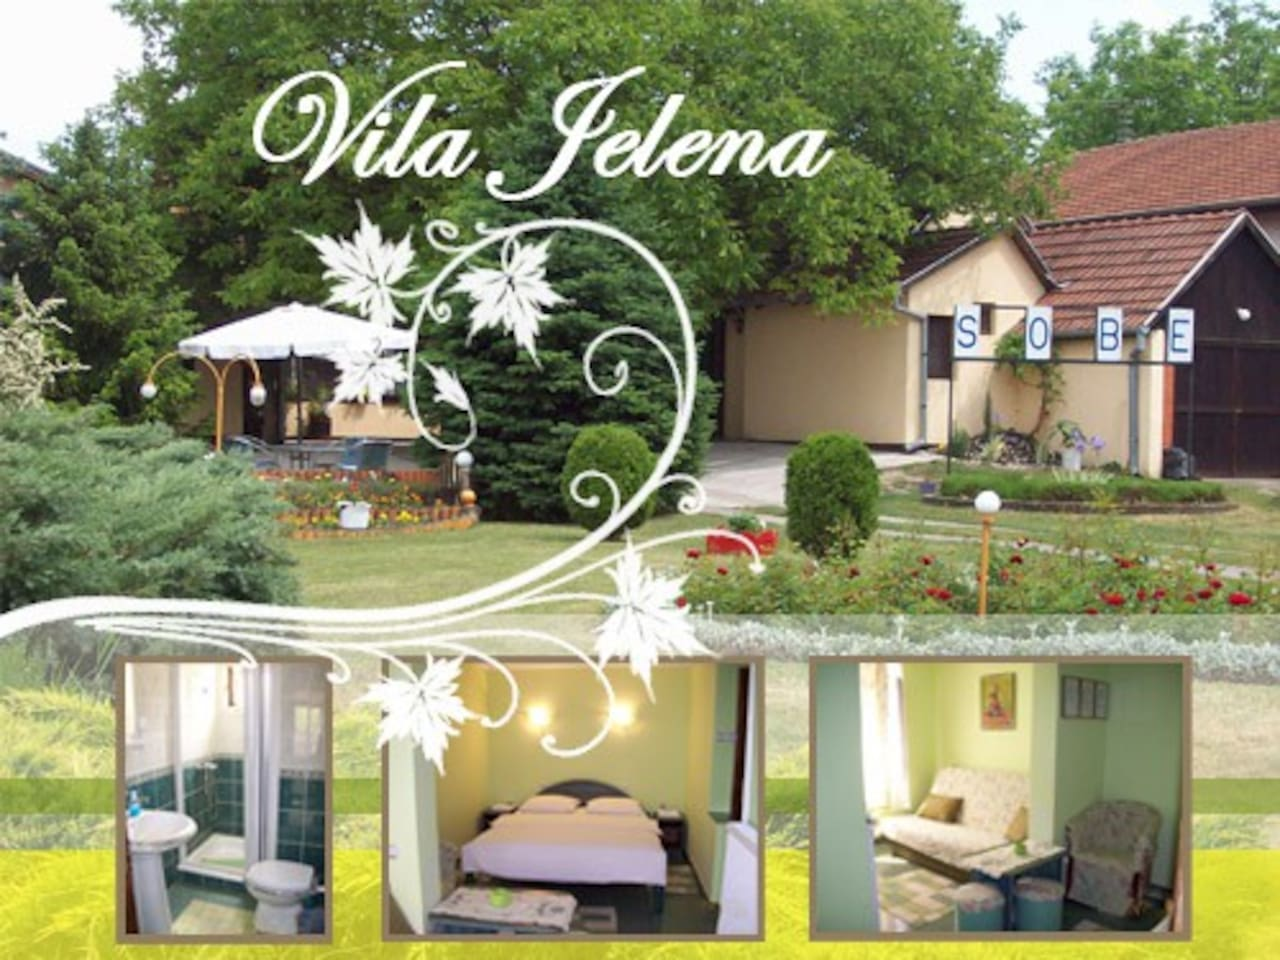 Vila JELENA, Rooms near lake Palic